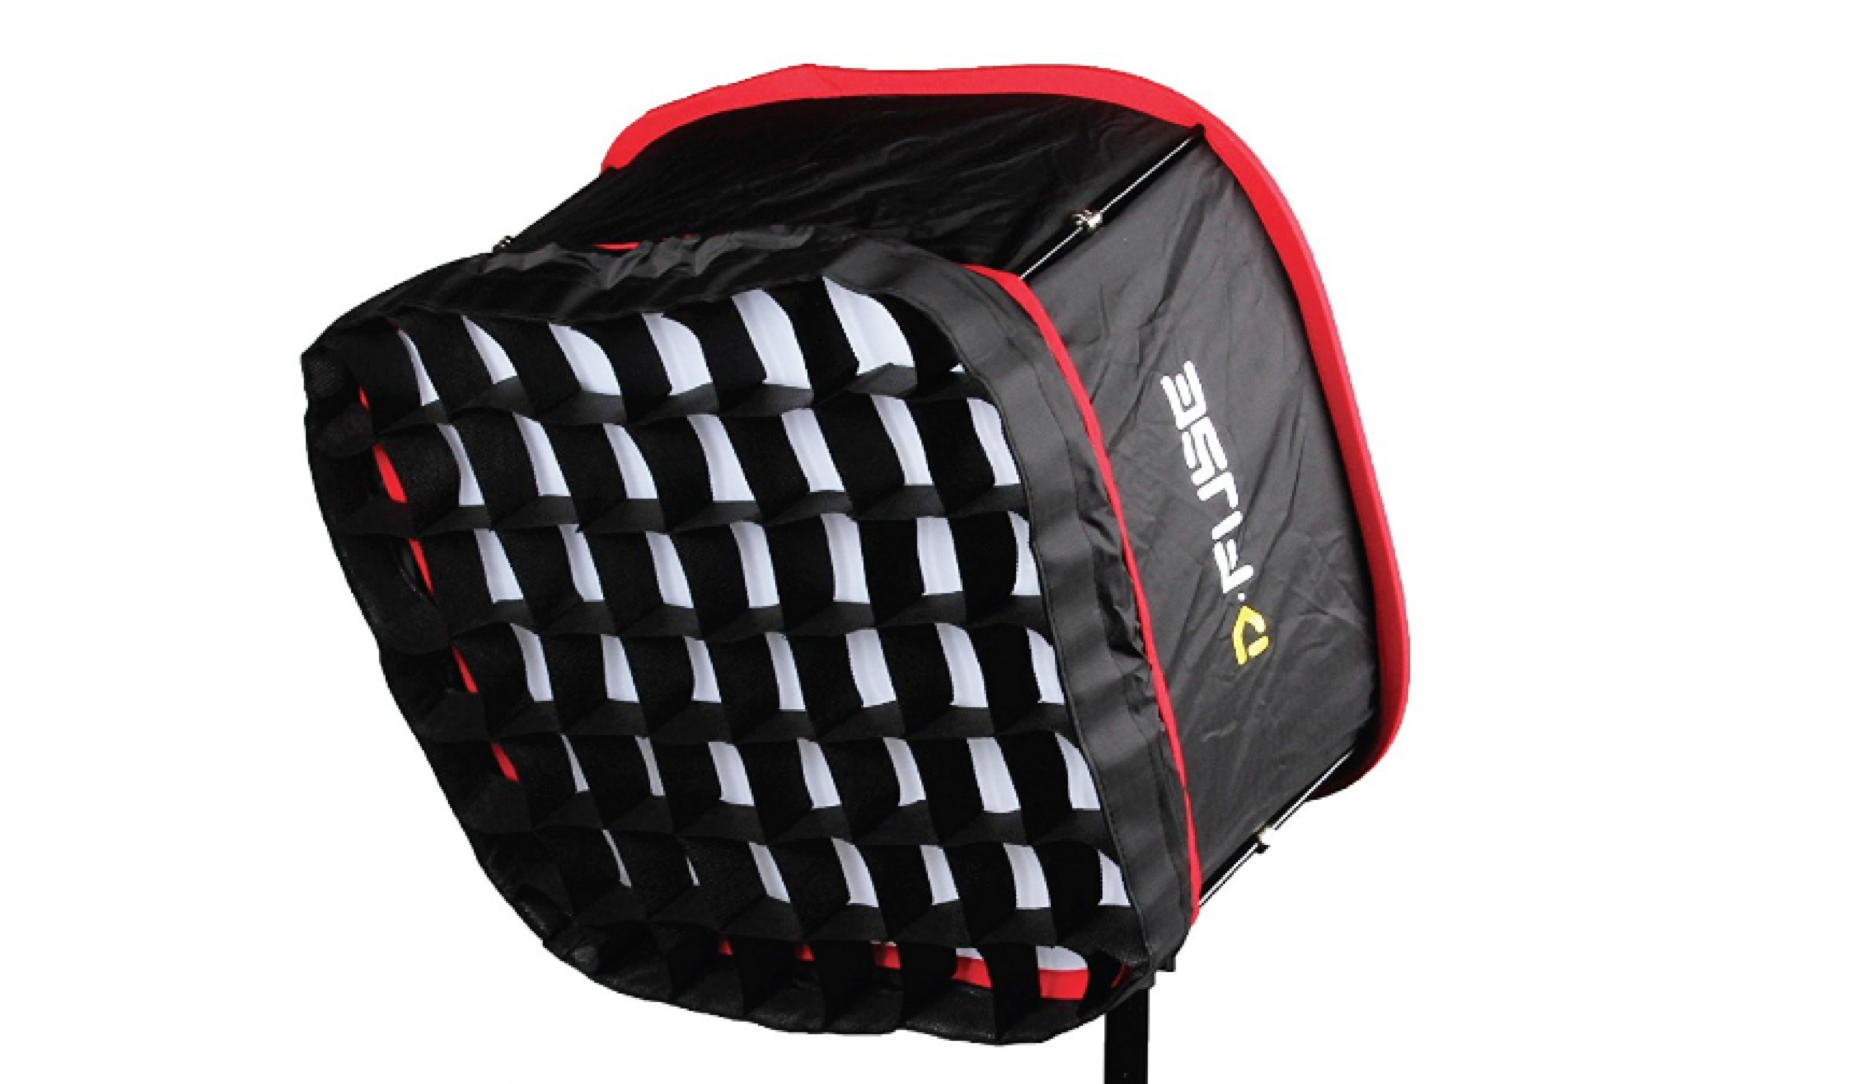 D-Fuse Grid mounted to soft box,  $24.95 alone  or  $49.95 for both at Amazon .